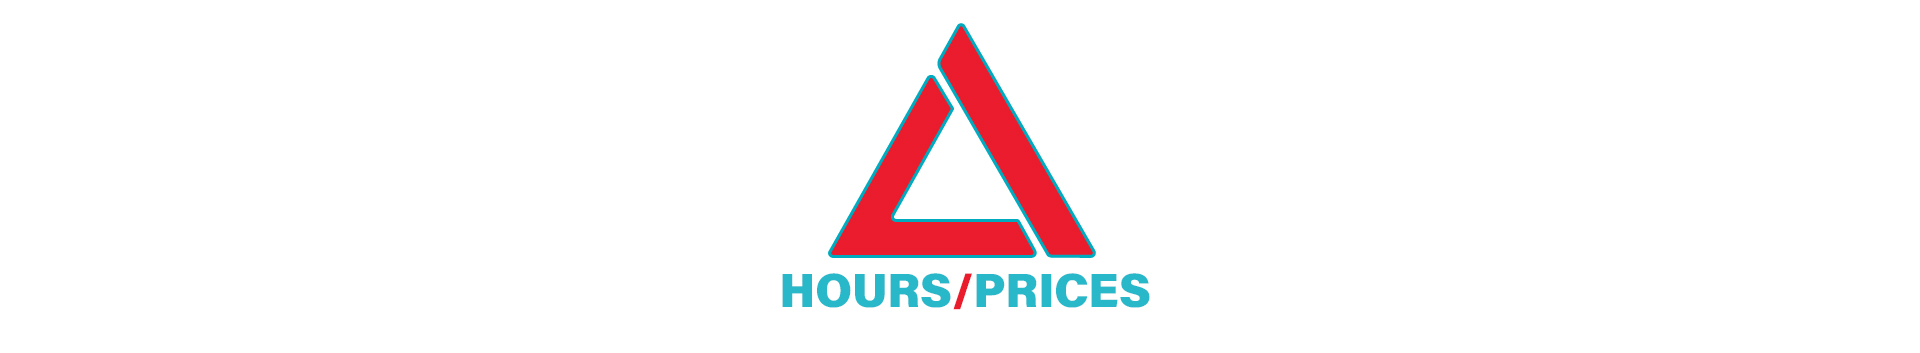 ActiveKidz Hours and Prices